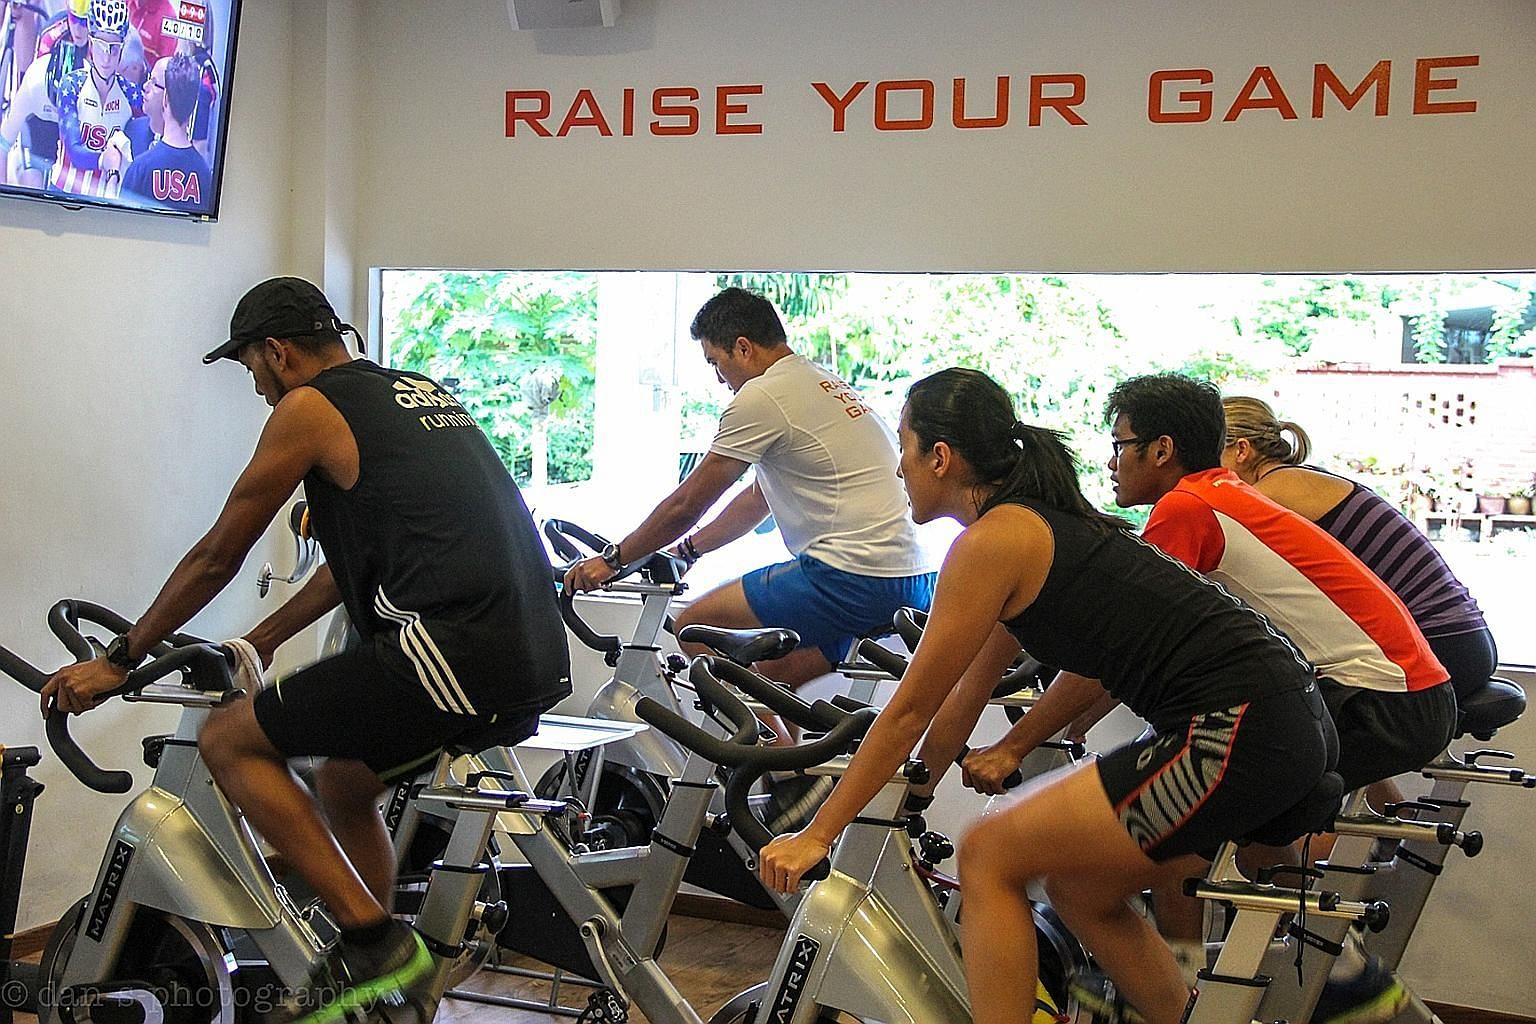 The environment at Altitude Gym can be adjusted to an altitude level of 2,500m to 3,500m.